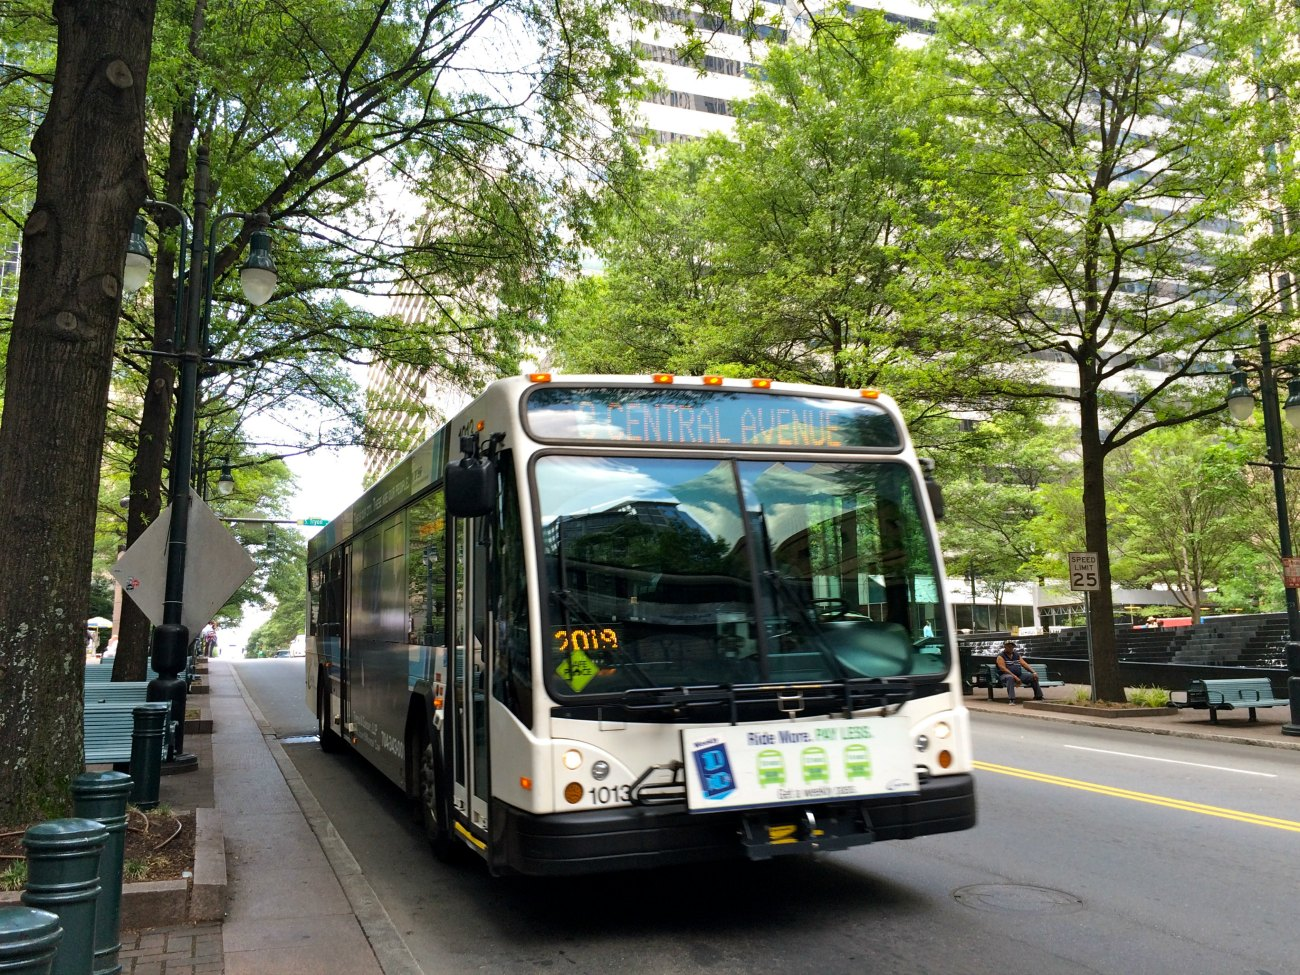 What goals do you have for Charlotte transportation in the next 10 years?